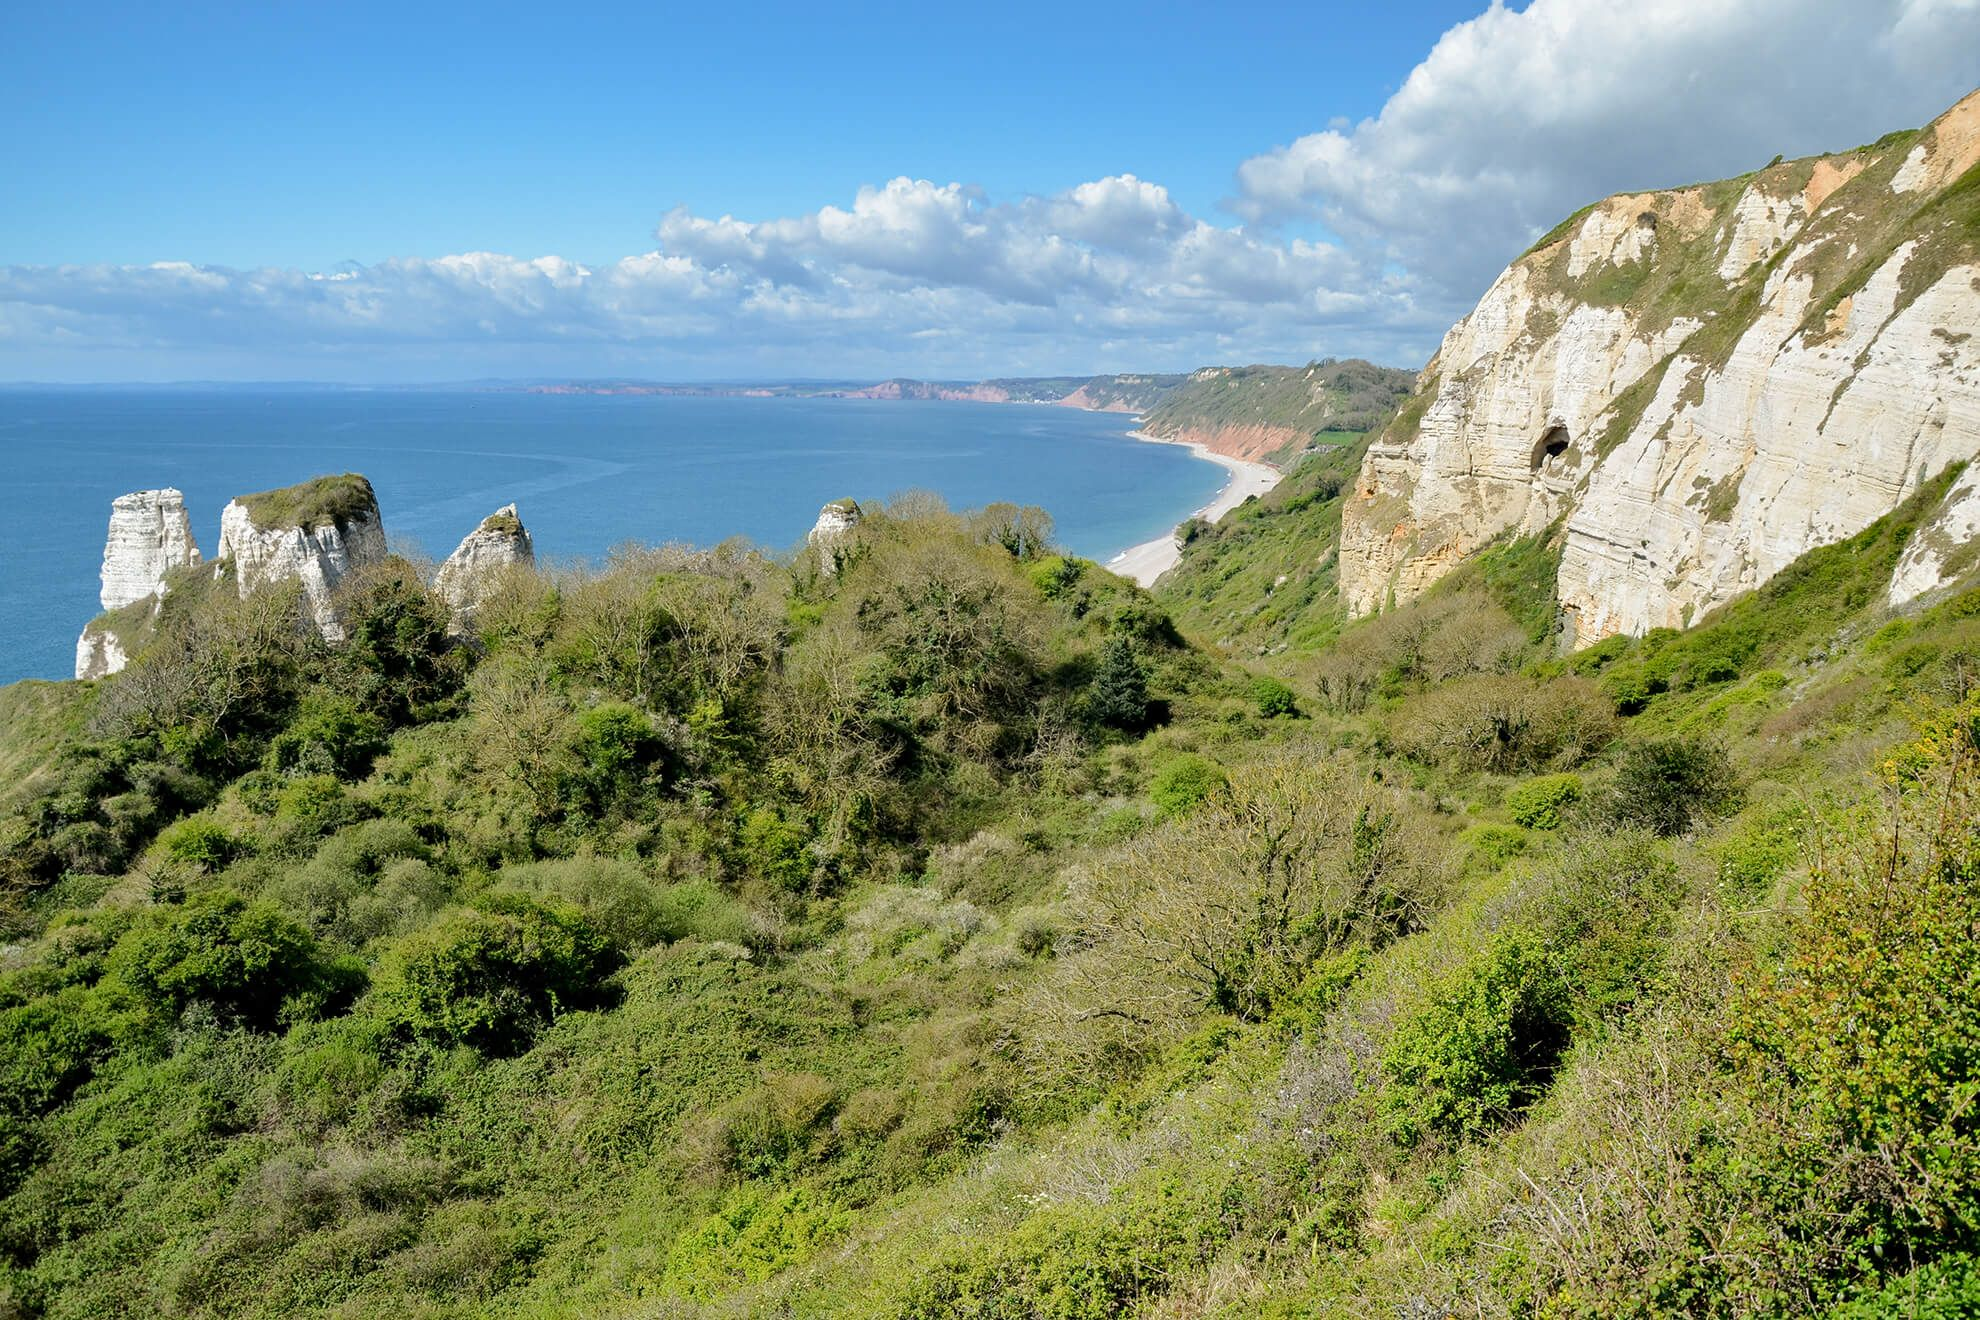 The walk from Beer to Branscombe Mouth, taking in the Hooken Undercliff, is one of Britain's most stunning walks